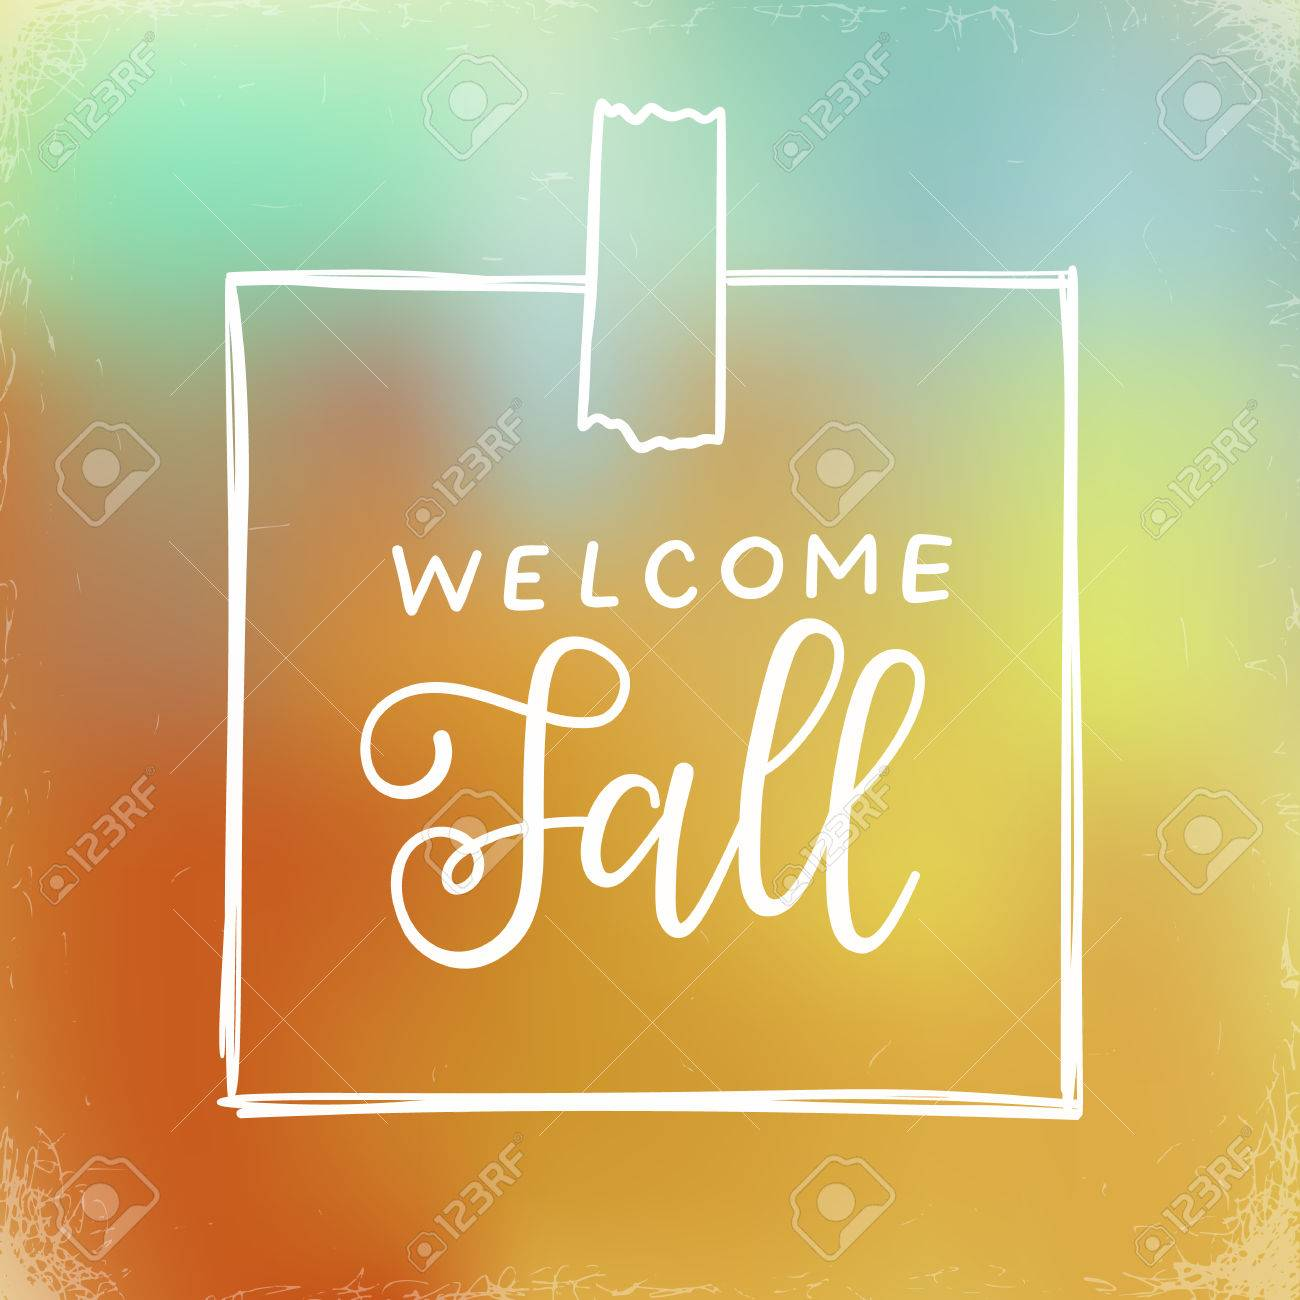 vector welcome fall hand lettering calligraphic word greeting card template vector typographic illustration with handwritten words about autumn on a